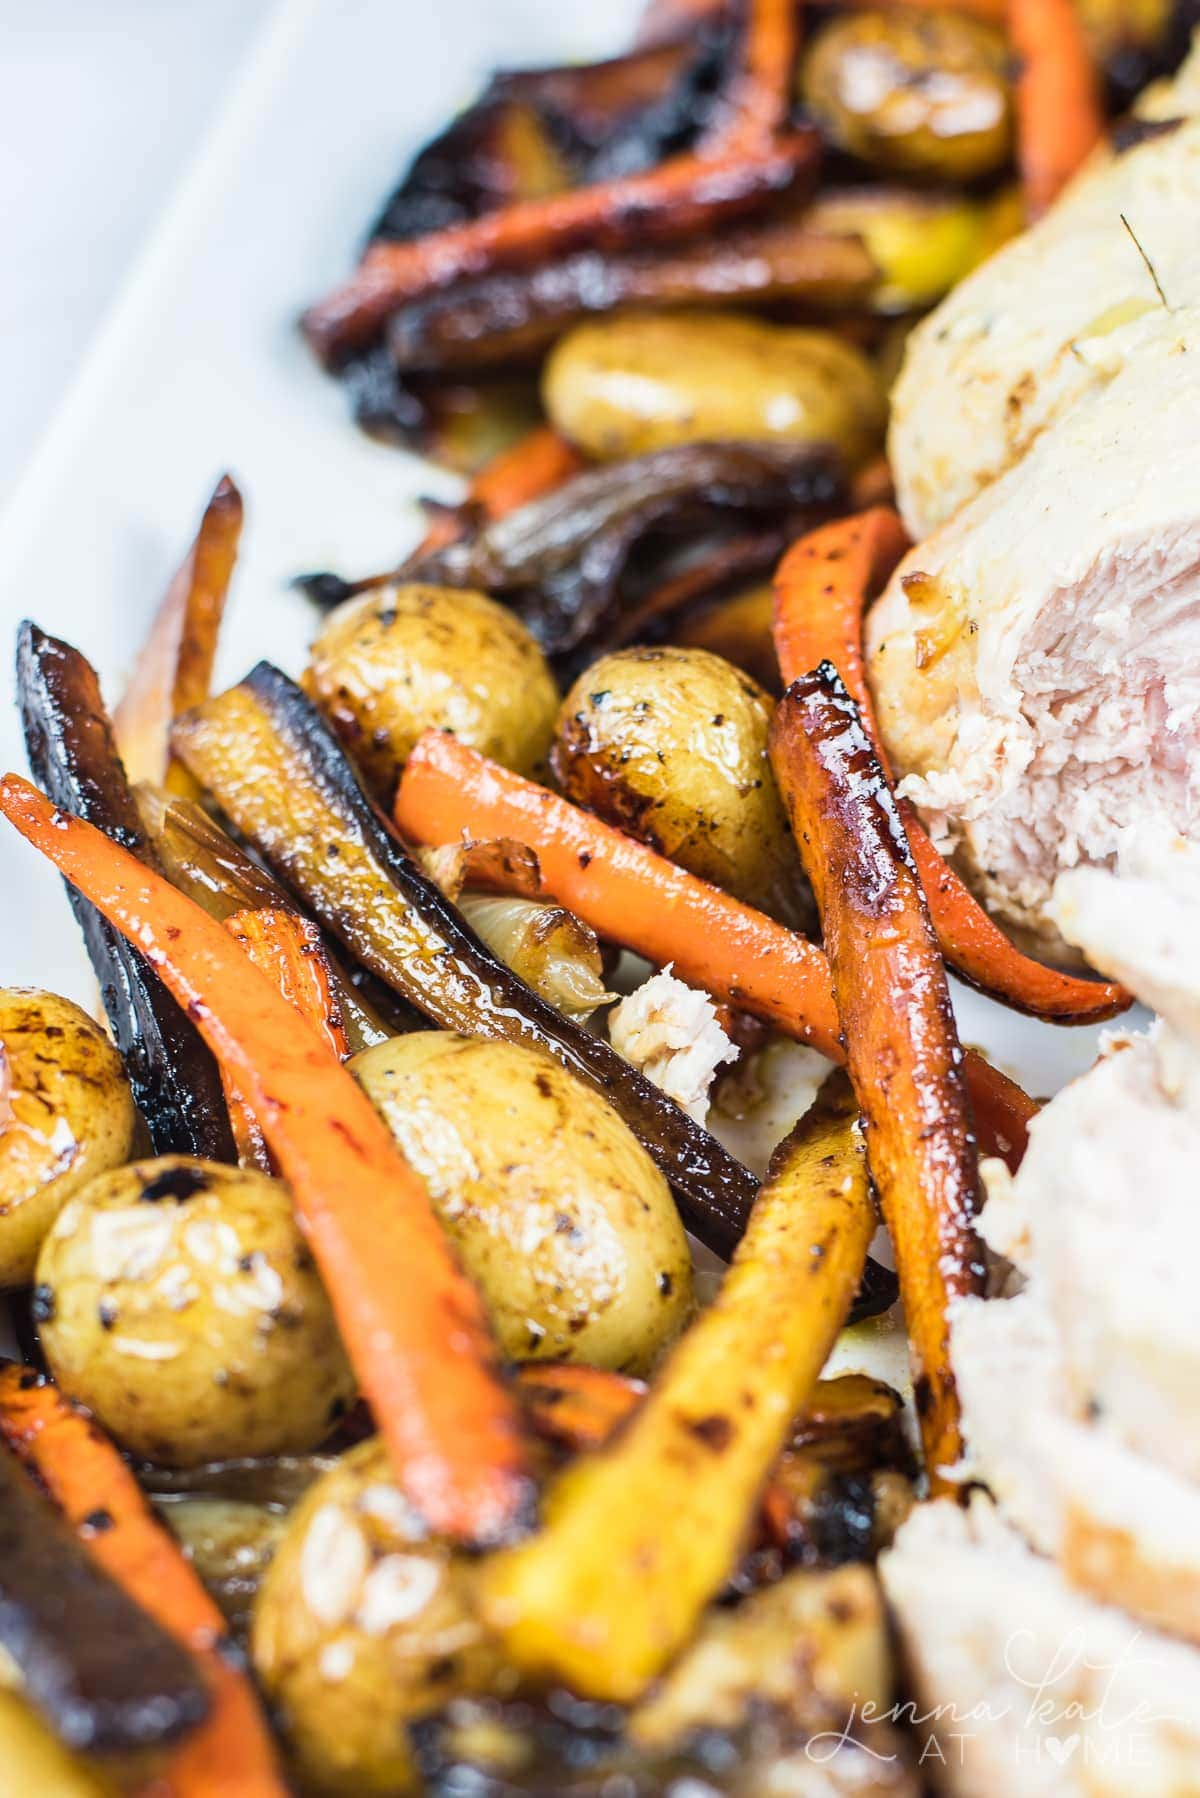 These roasted root vegetables are the perfect side to serve along a roasted turkey breast